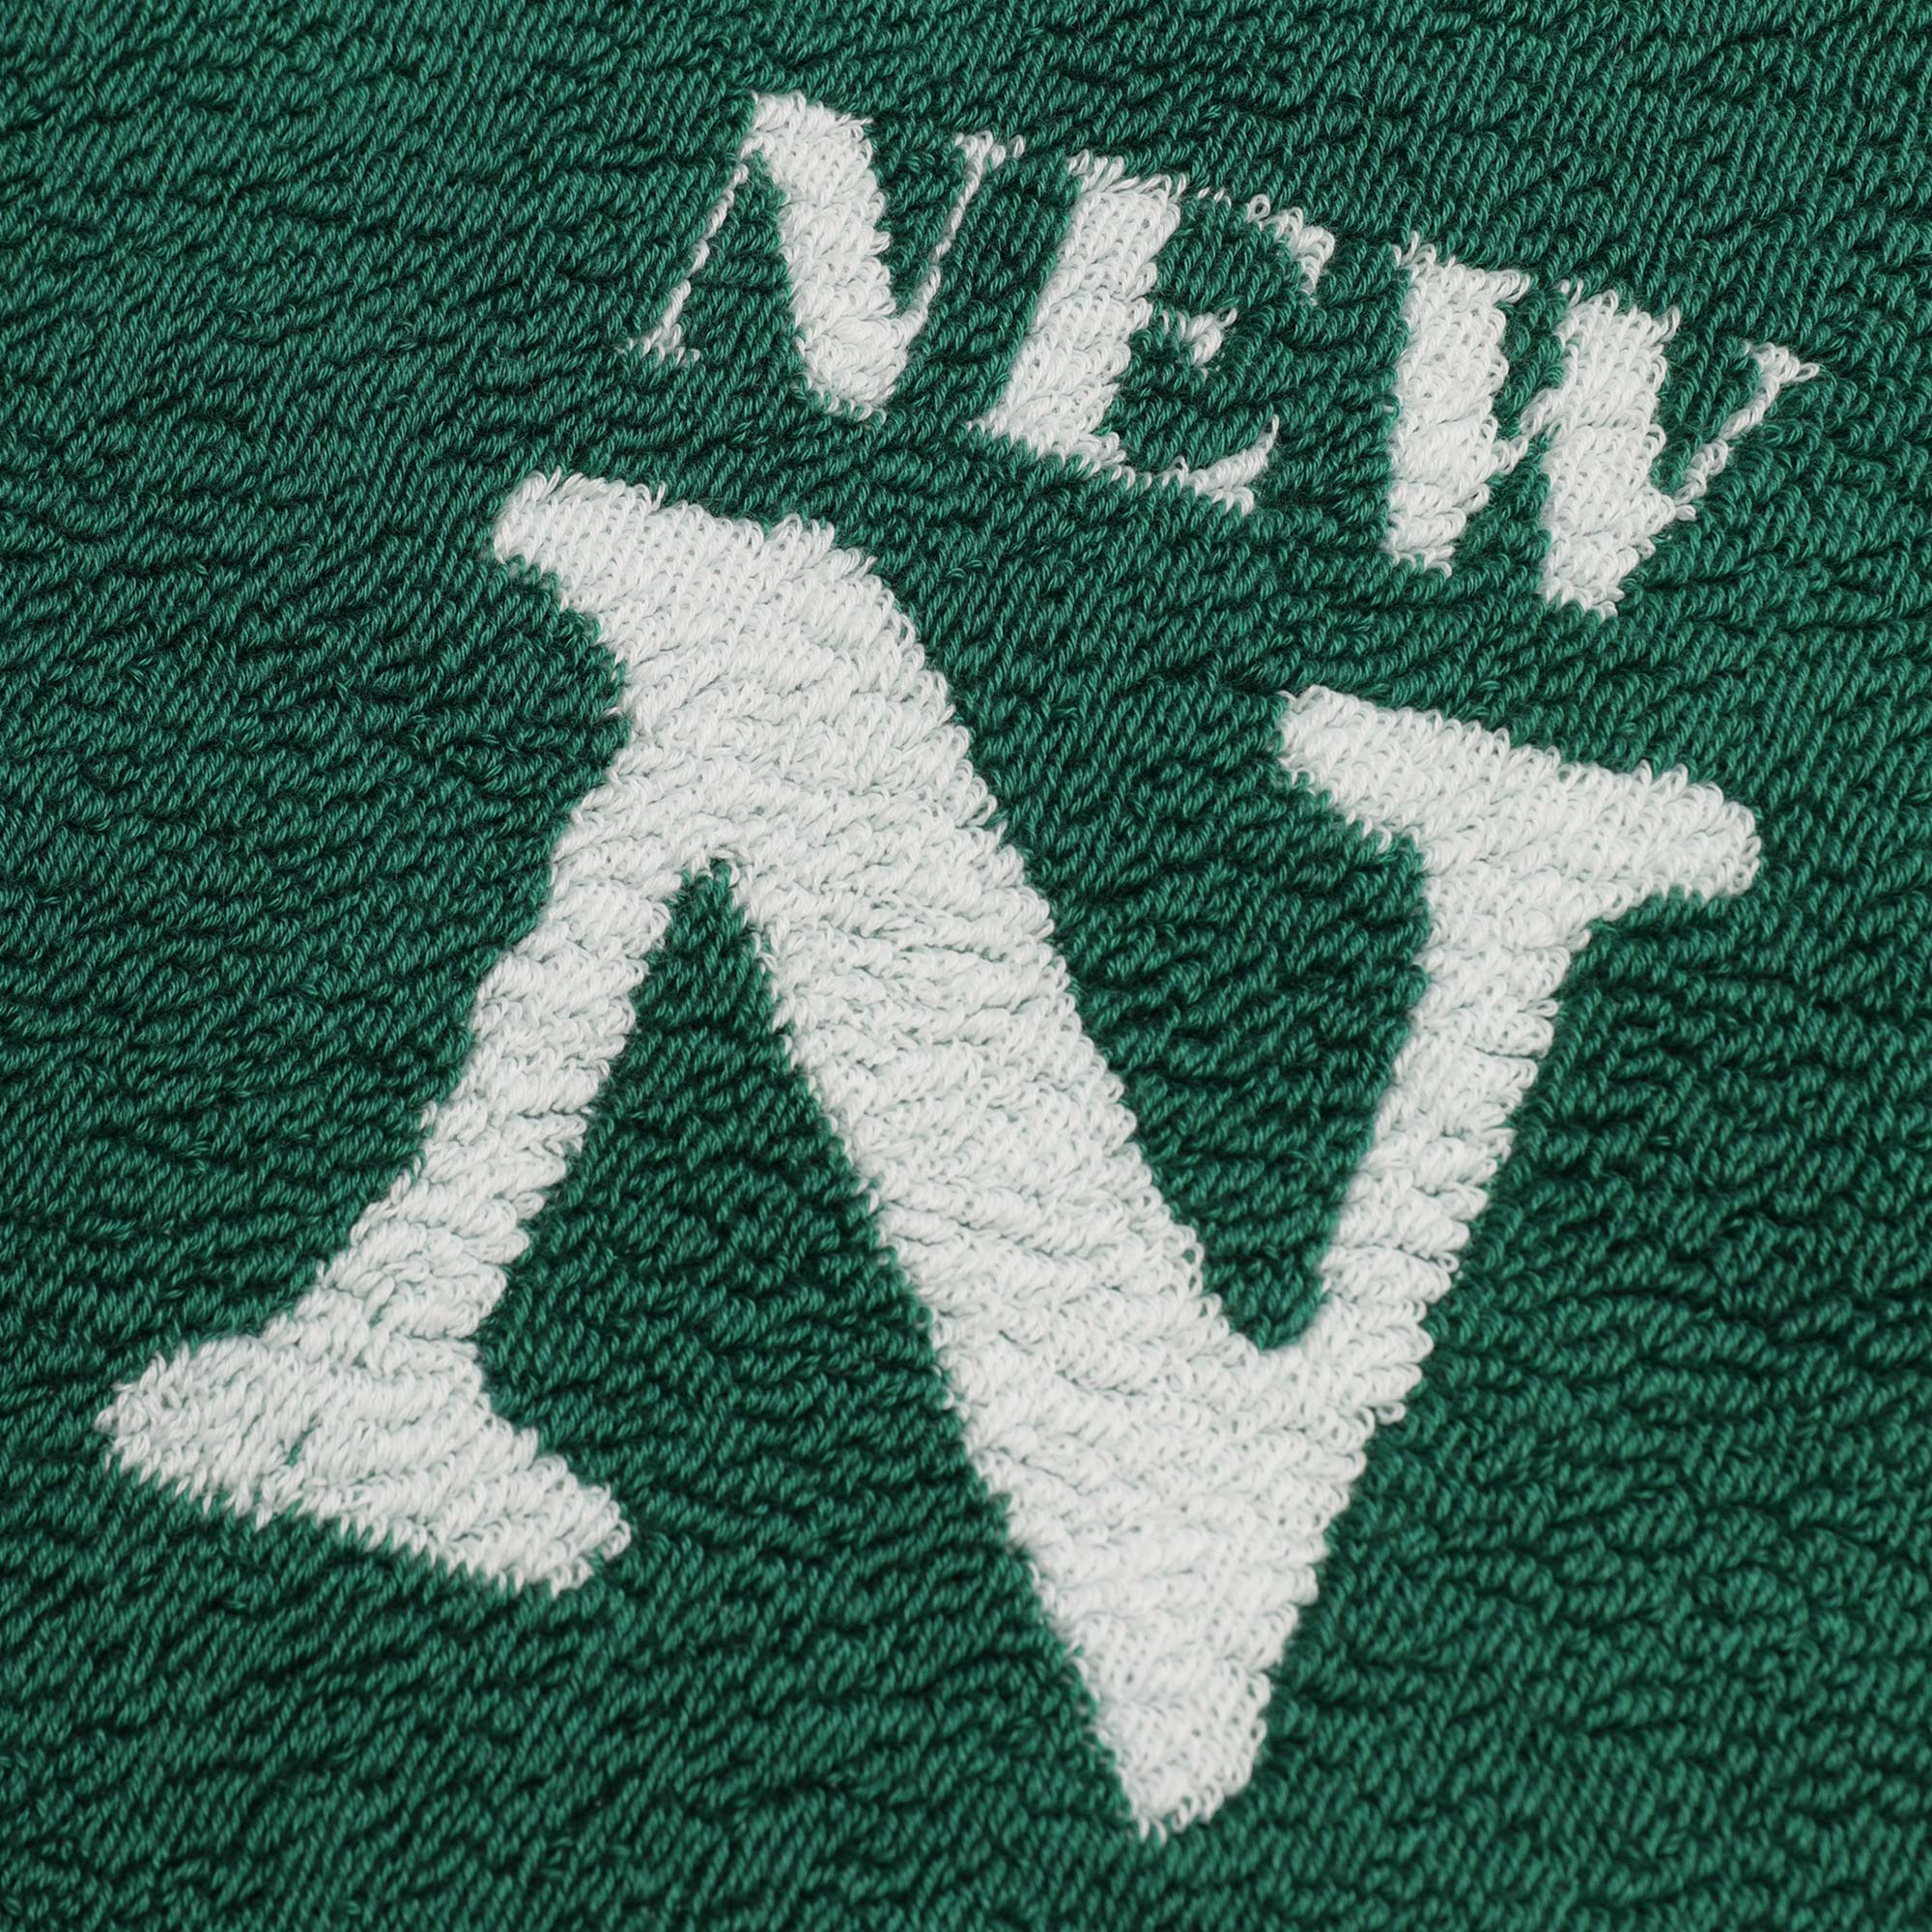 Undercover New Noise Face Towel UC1A4M03-2 - Green 2